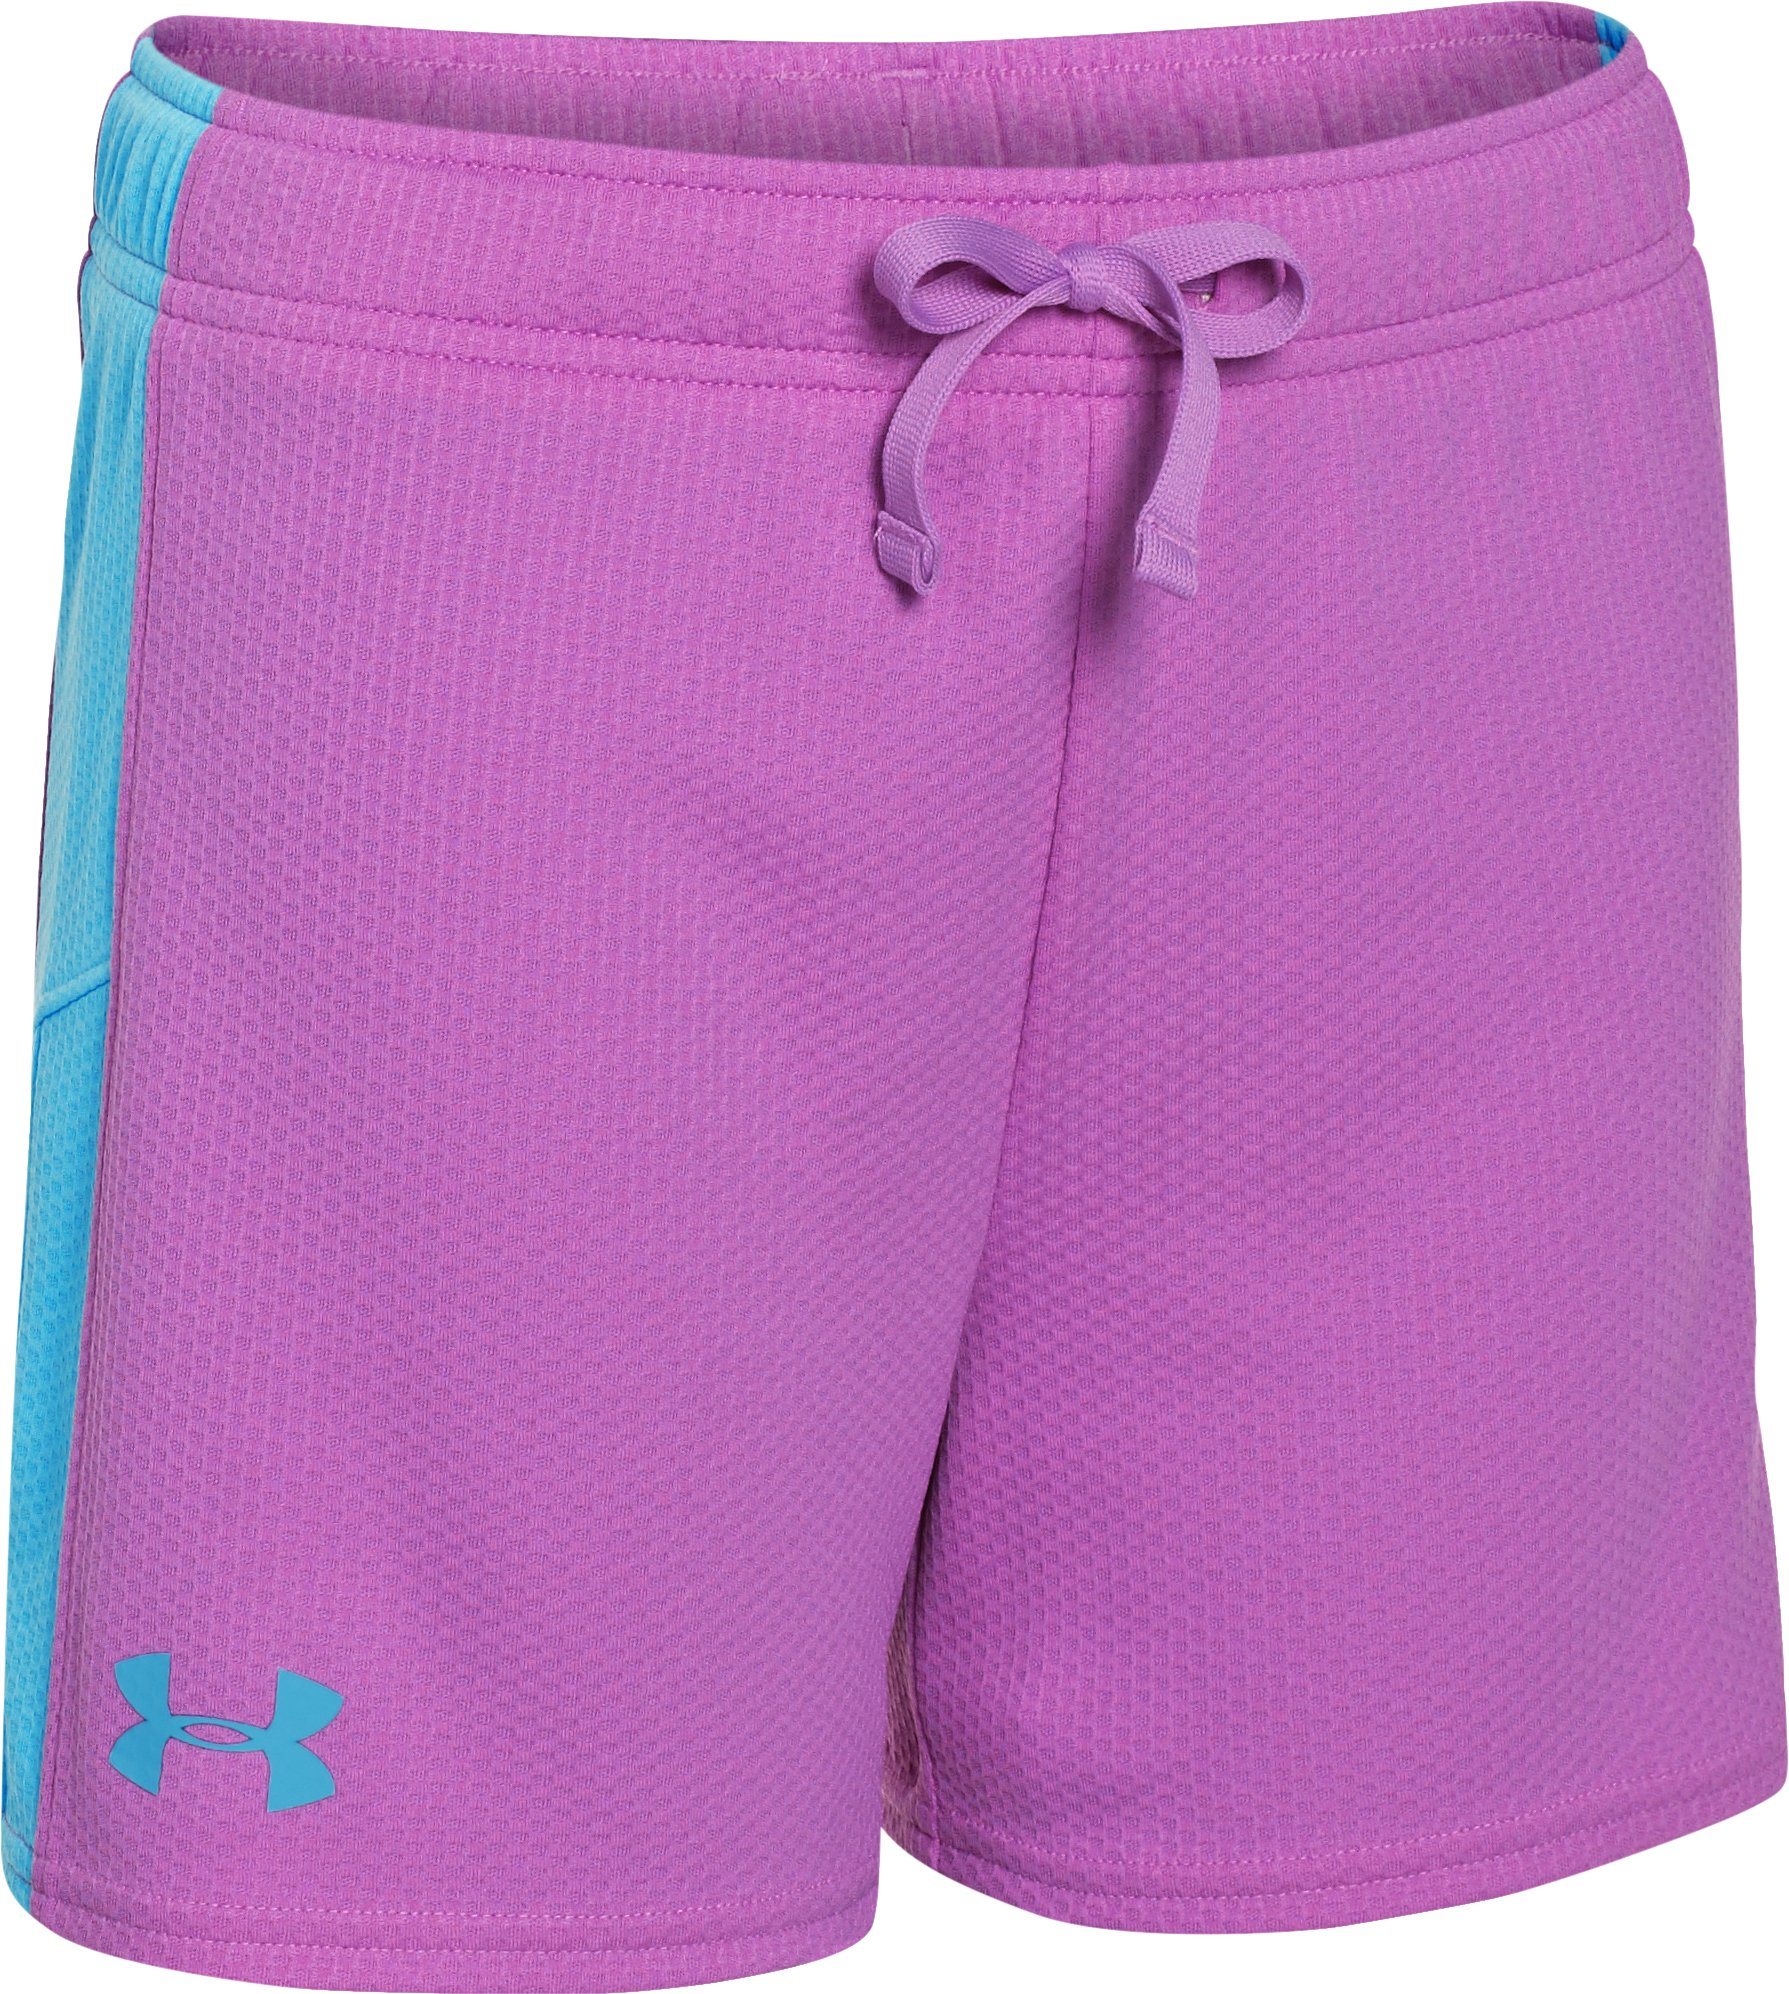 "Girls' UA Intensity 3"" Shorts, EXOTIC BLOOM, zoomed image"